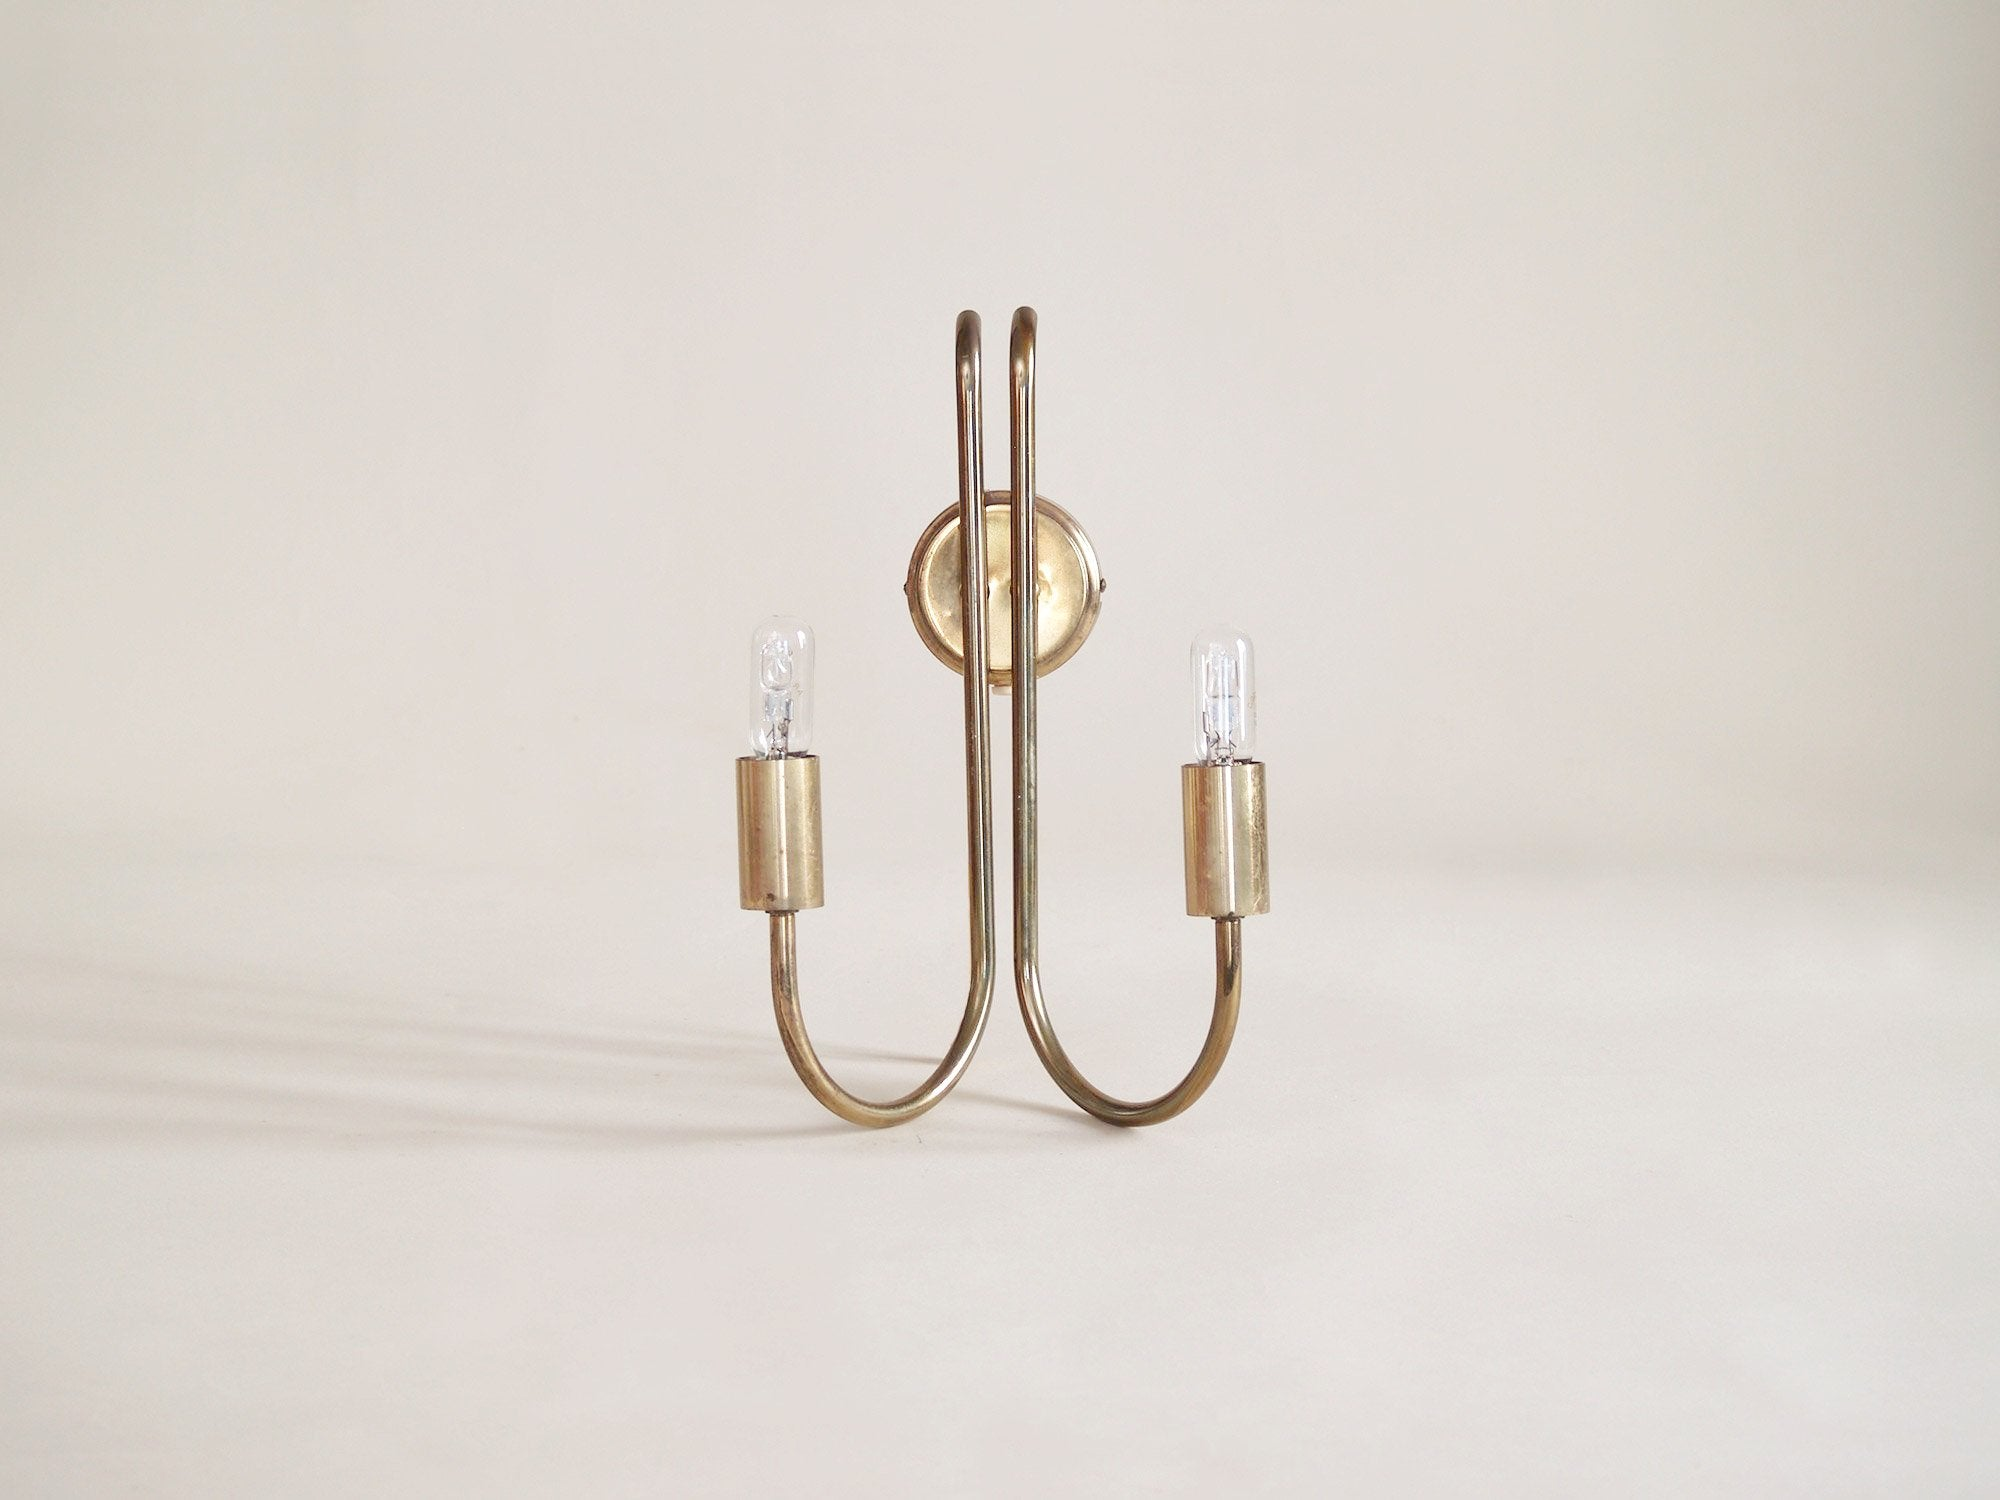 Paire d'appliques néoclassiques doubles en laiton, Danemark (vers 1950)..Pair of neoclassical brass wall light, Denmark (circa 1950)